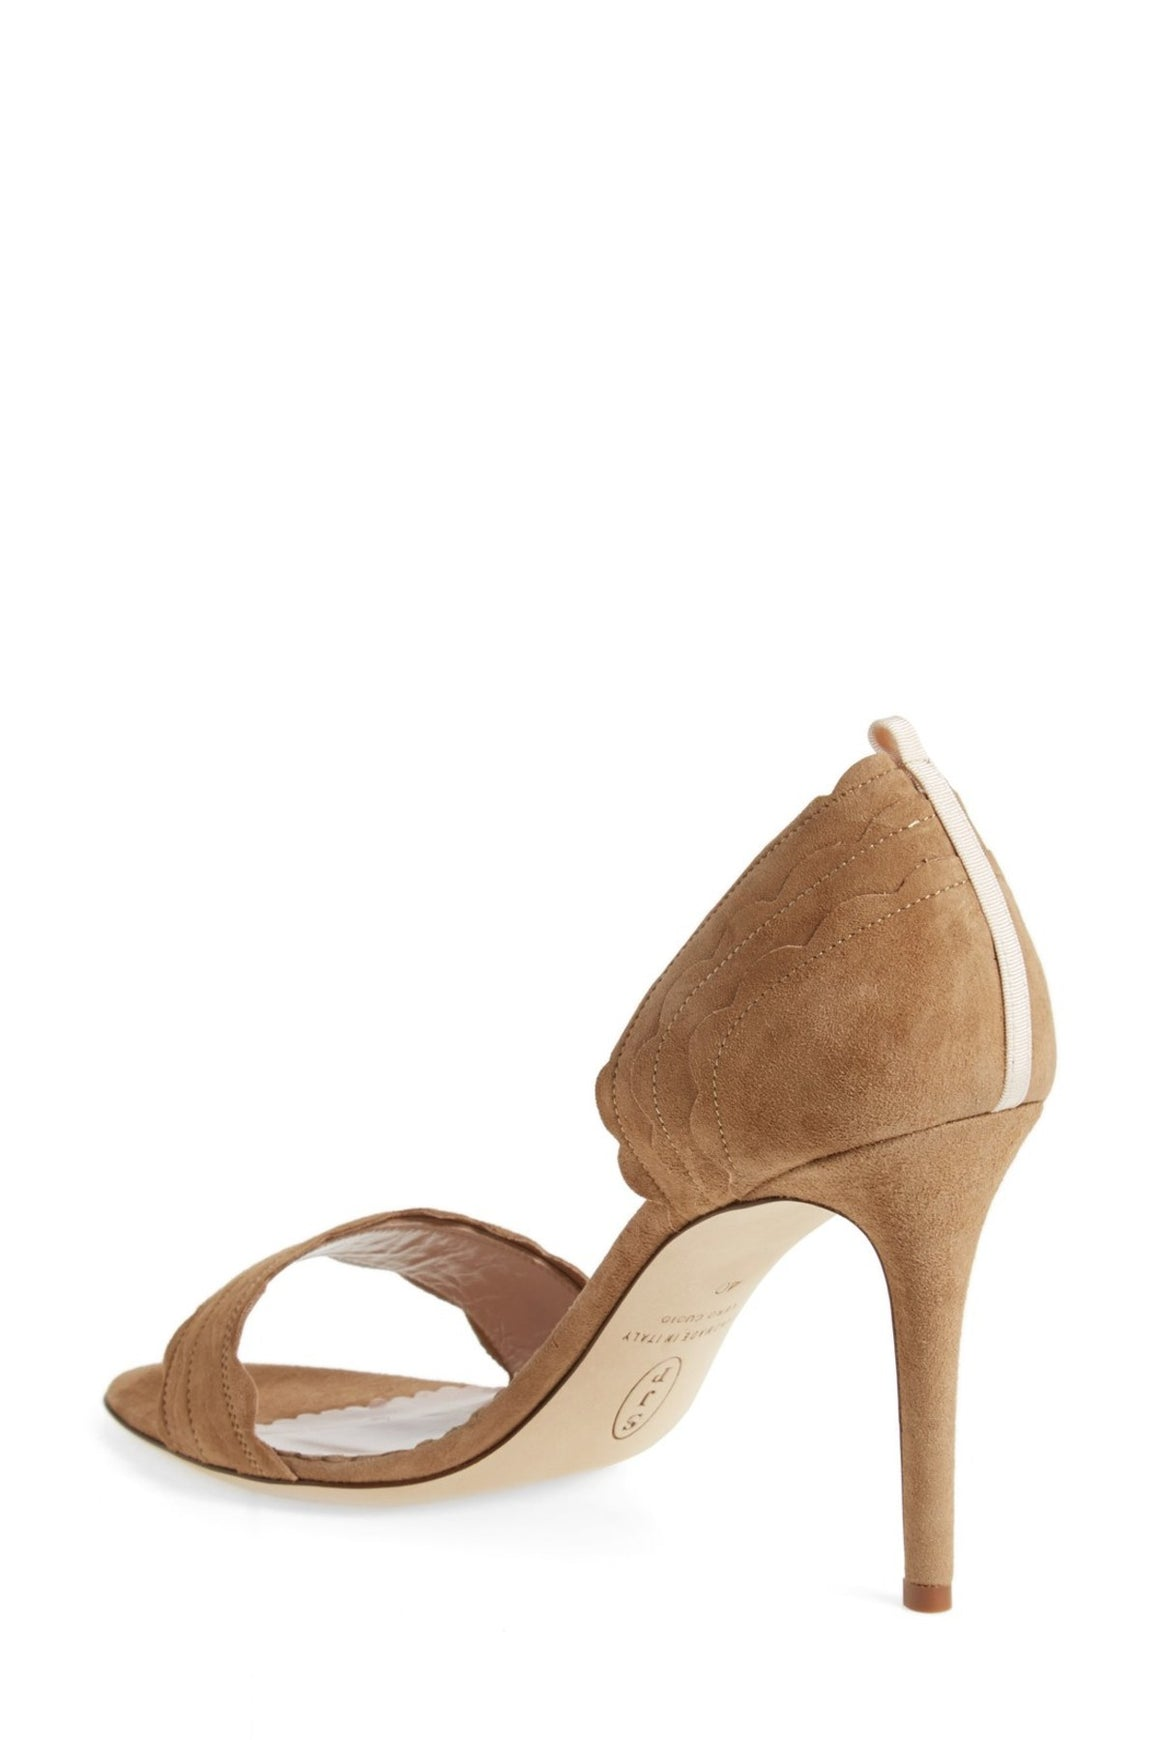 Bobbie Suede Heels-Shoes-SJP Collection-40.5-Max & Riley